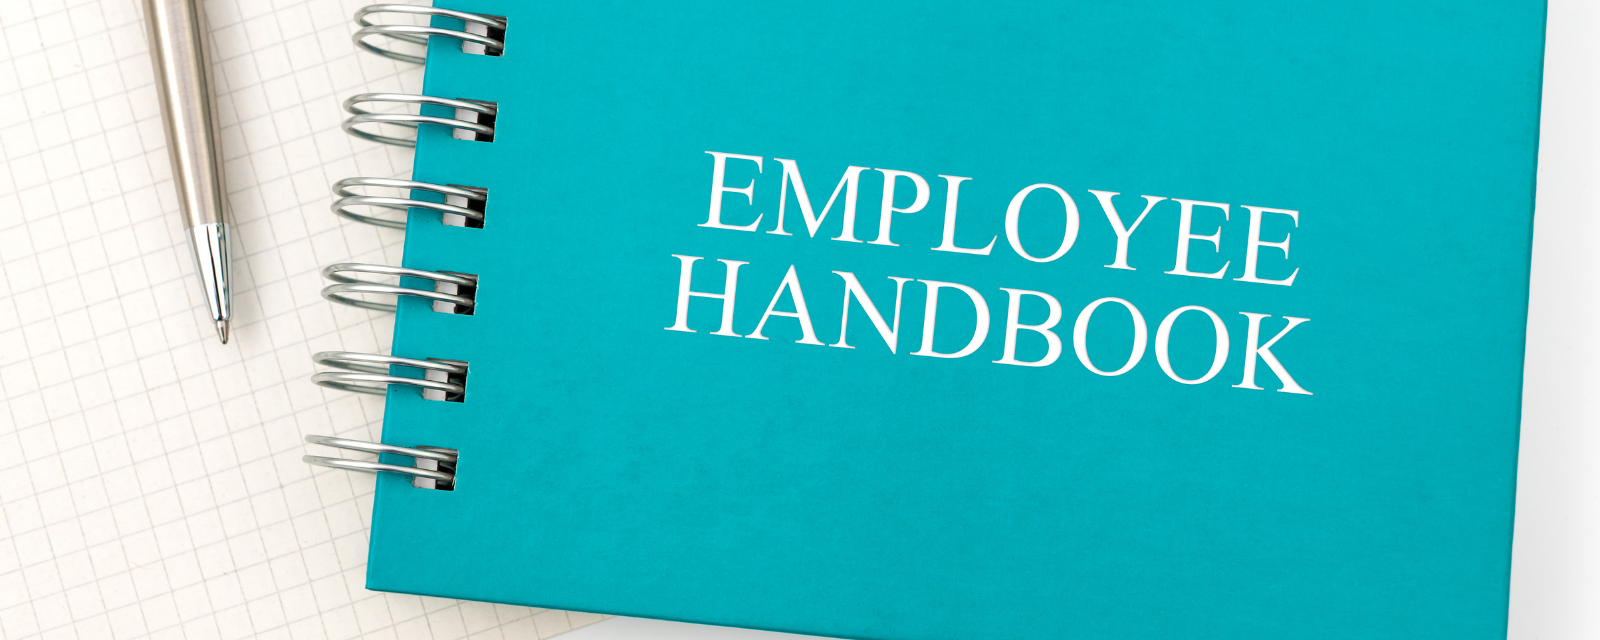 spiral with employee handbook on the cover